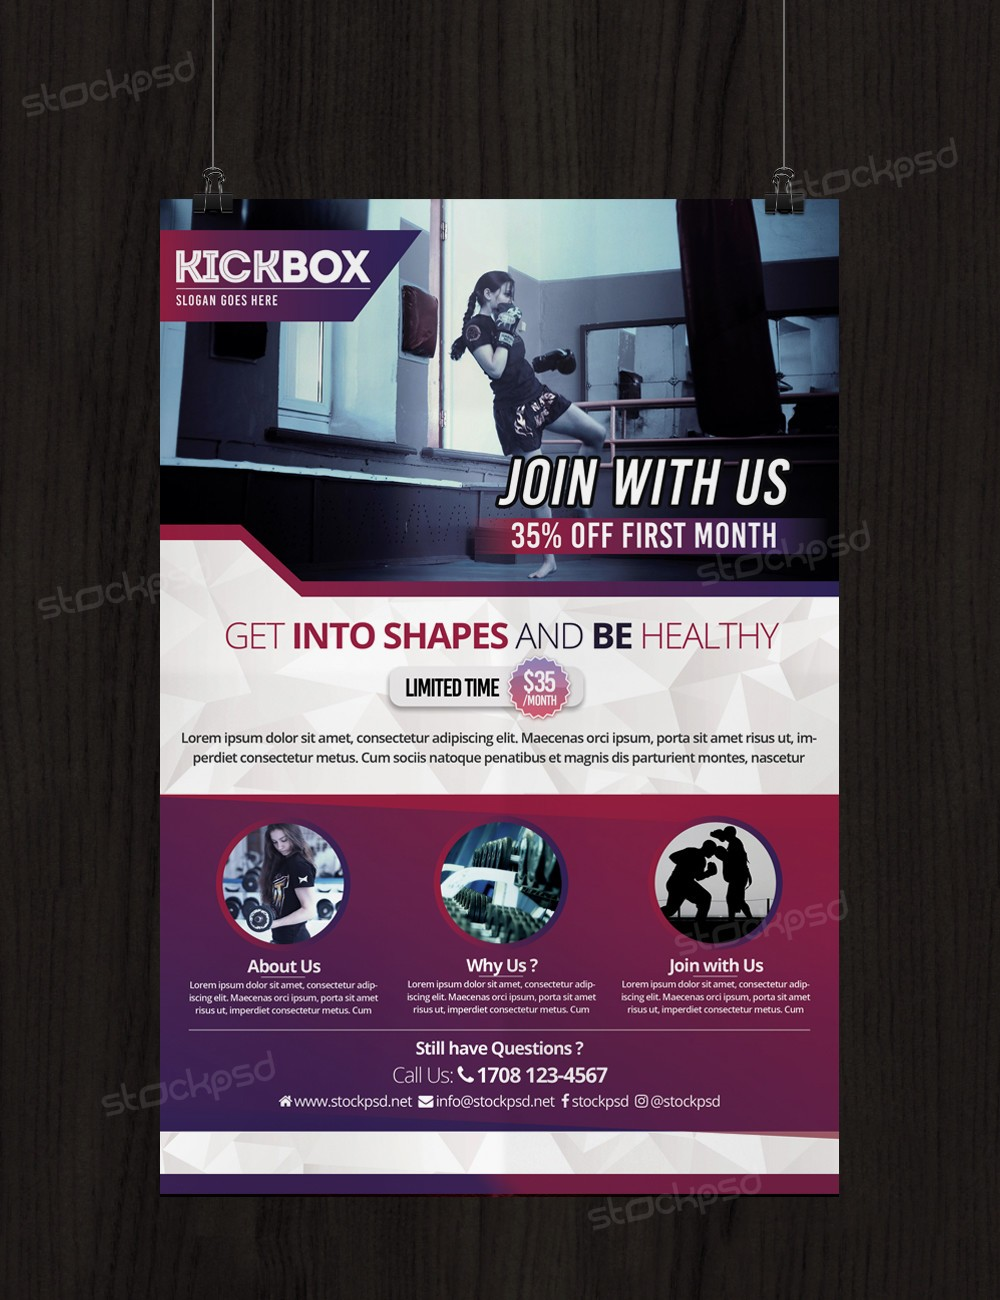 kick boxing and gym psd flyer template stockpsd net kick boxing and gym is a psd flyer template to